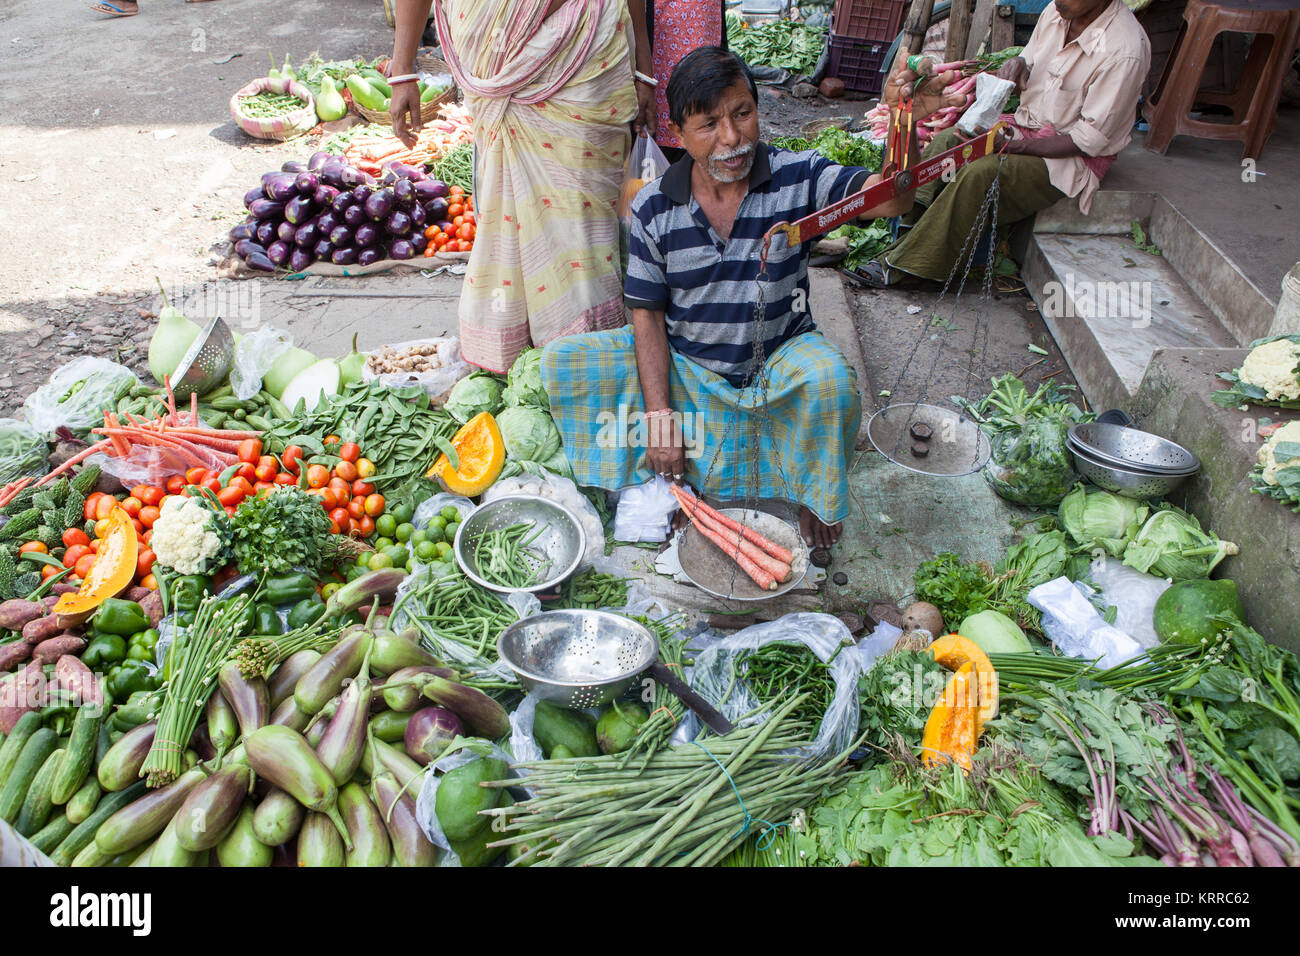 Vegetable seller using scales to weigh carrots in the Garia district of Kolkata, India - Stock Image